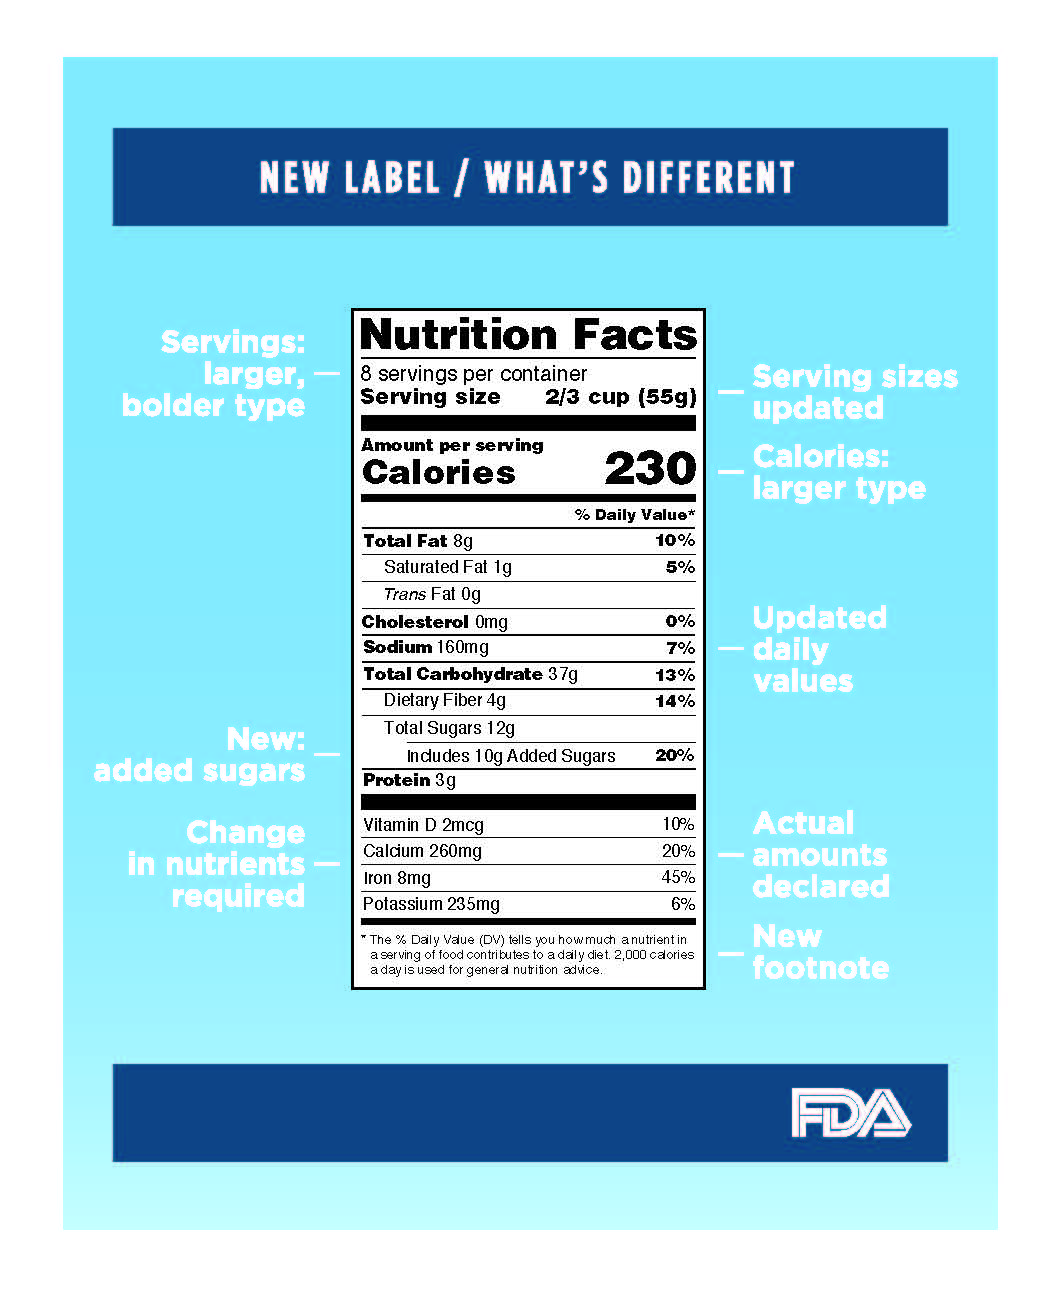 FDA Nutrition Label Changes Infographic